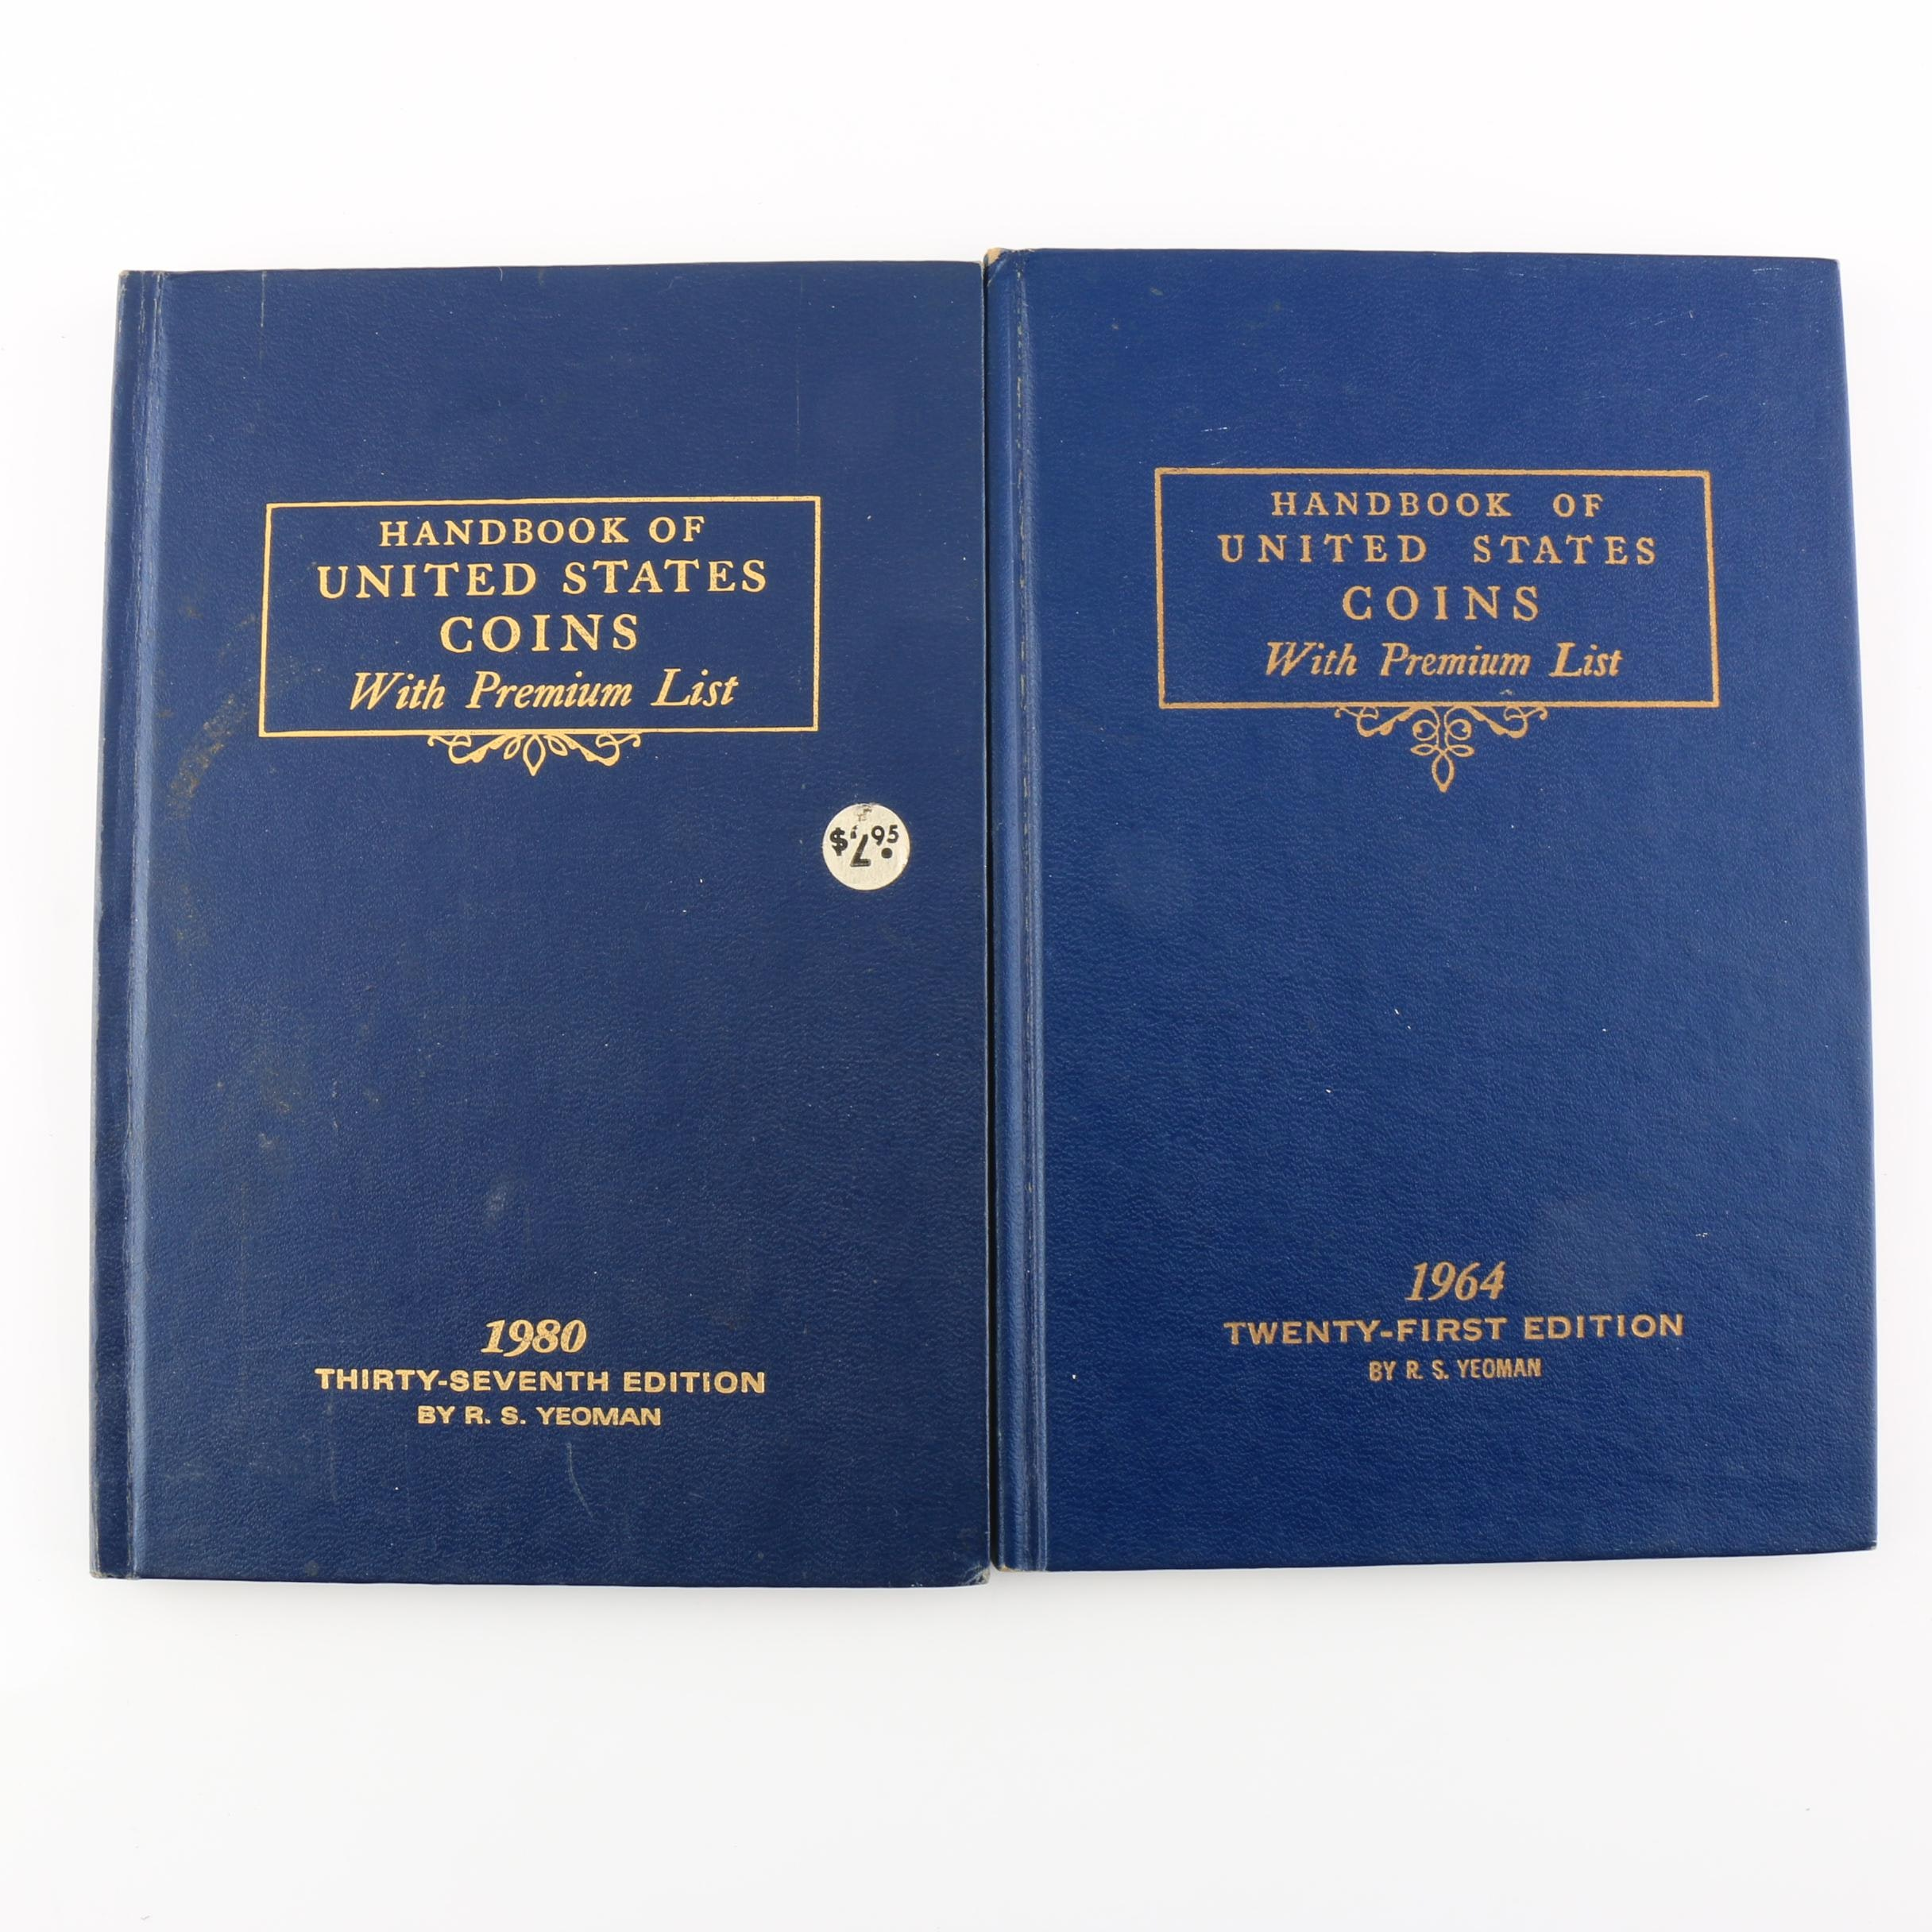 Group of Two Vintage Handbook of United States coins books: 1964 and 1980